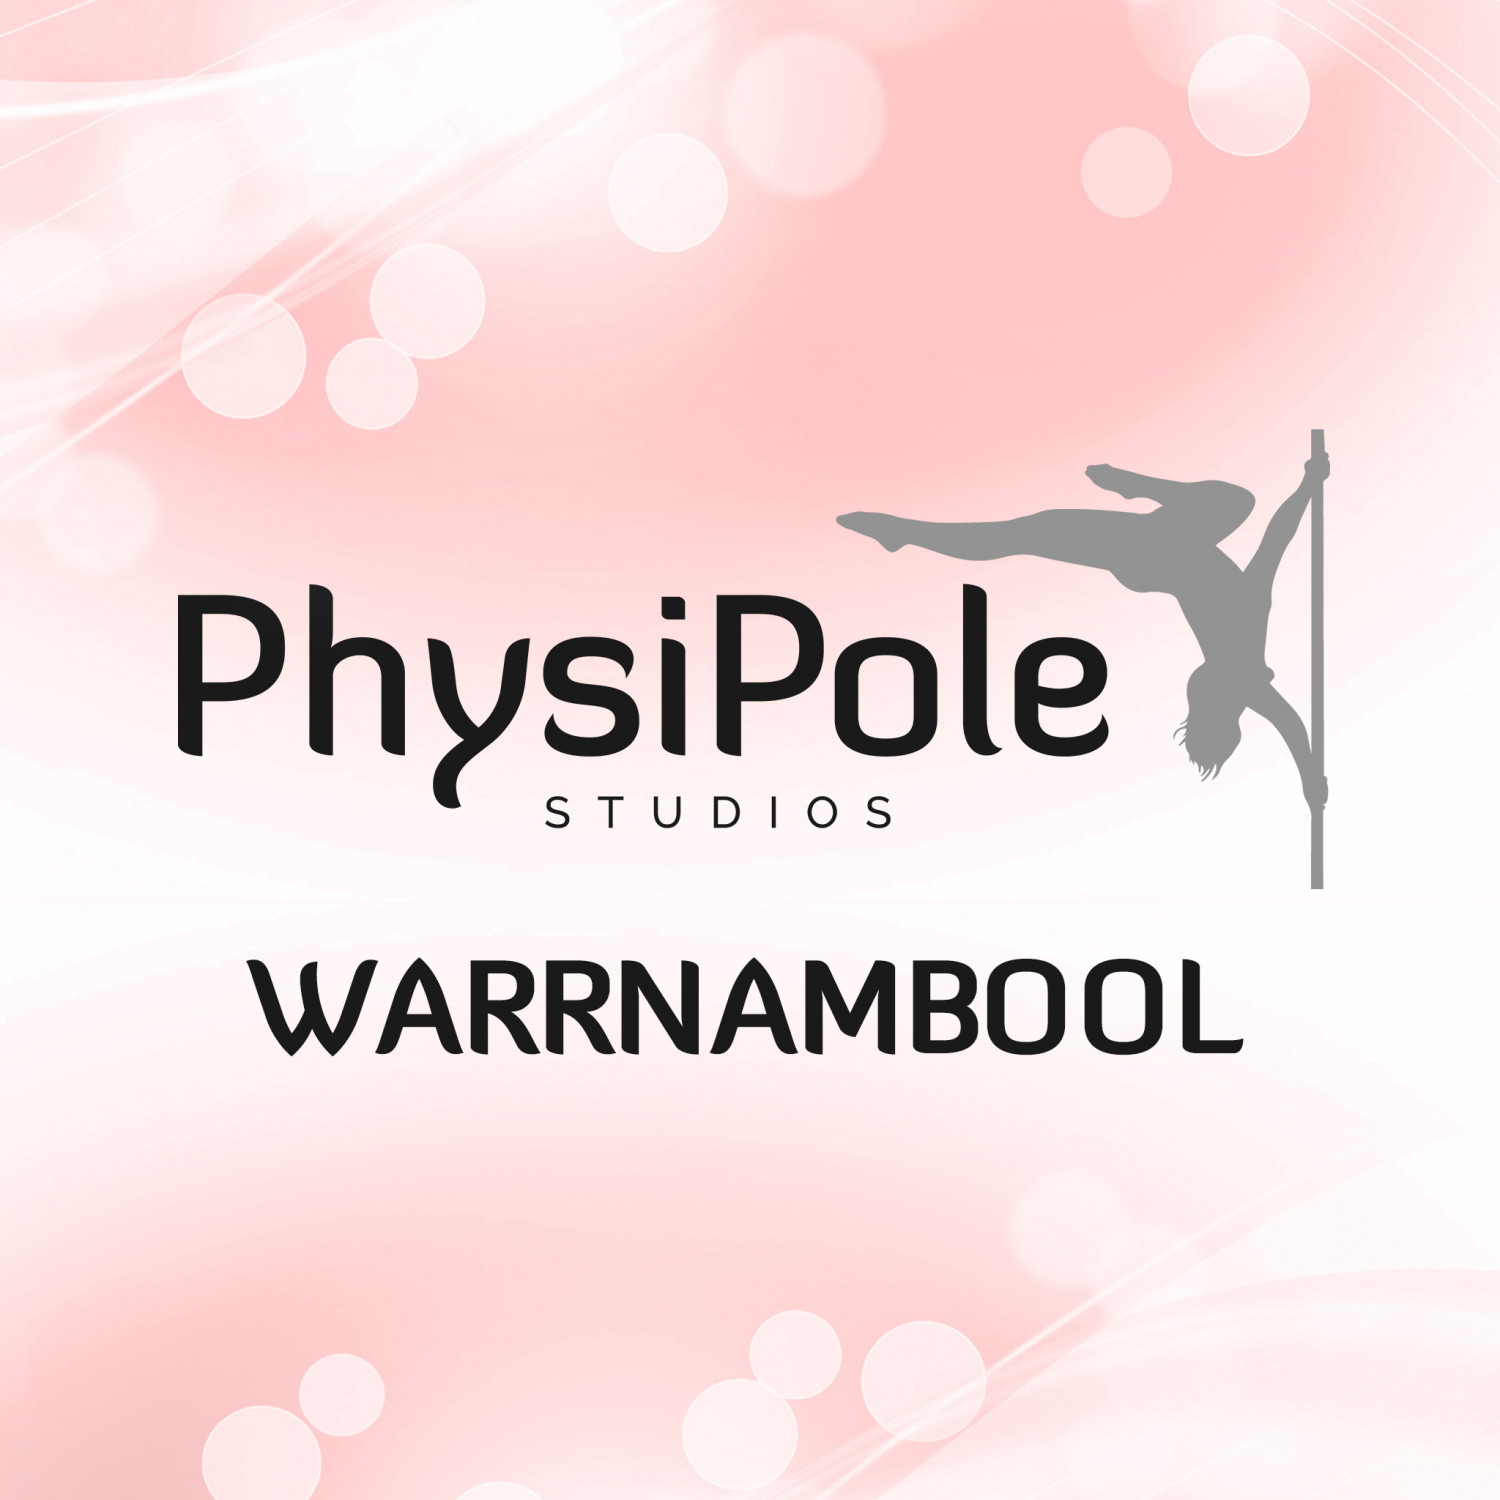 PhysiPole Studios Warrnambool